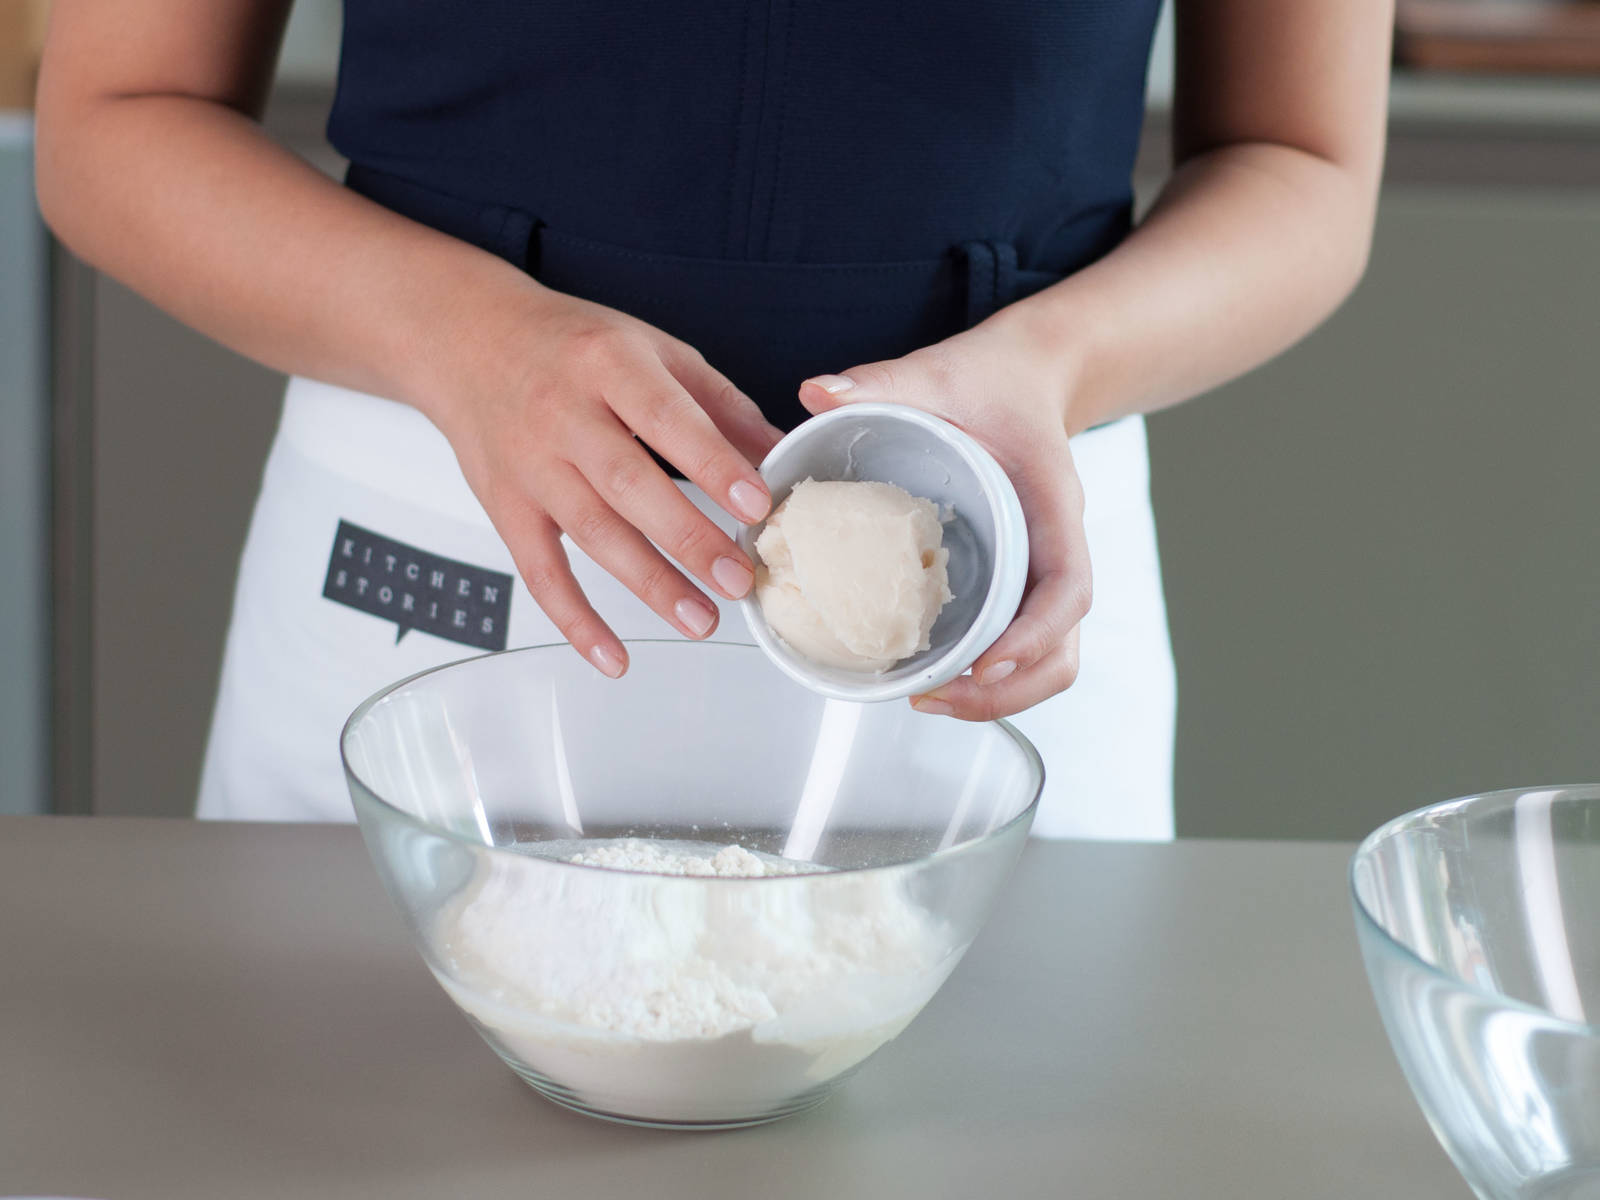 Mix two thirds of the flour with the confectioner's sugar, water and half of the lard. Knead into a smooth dough, set aside and let rest for approx. 30 min.